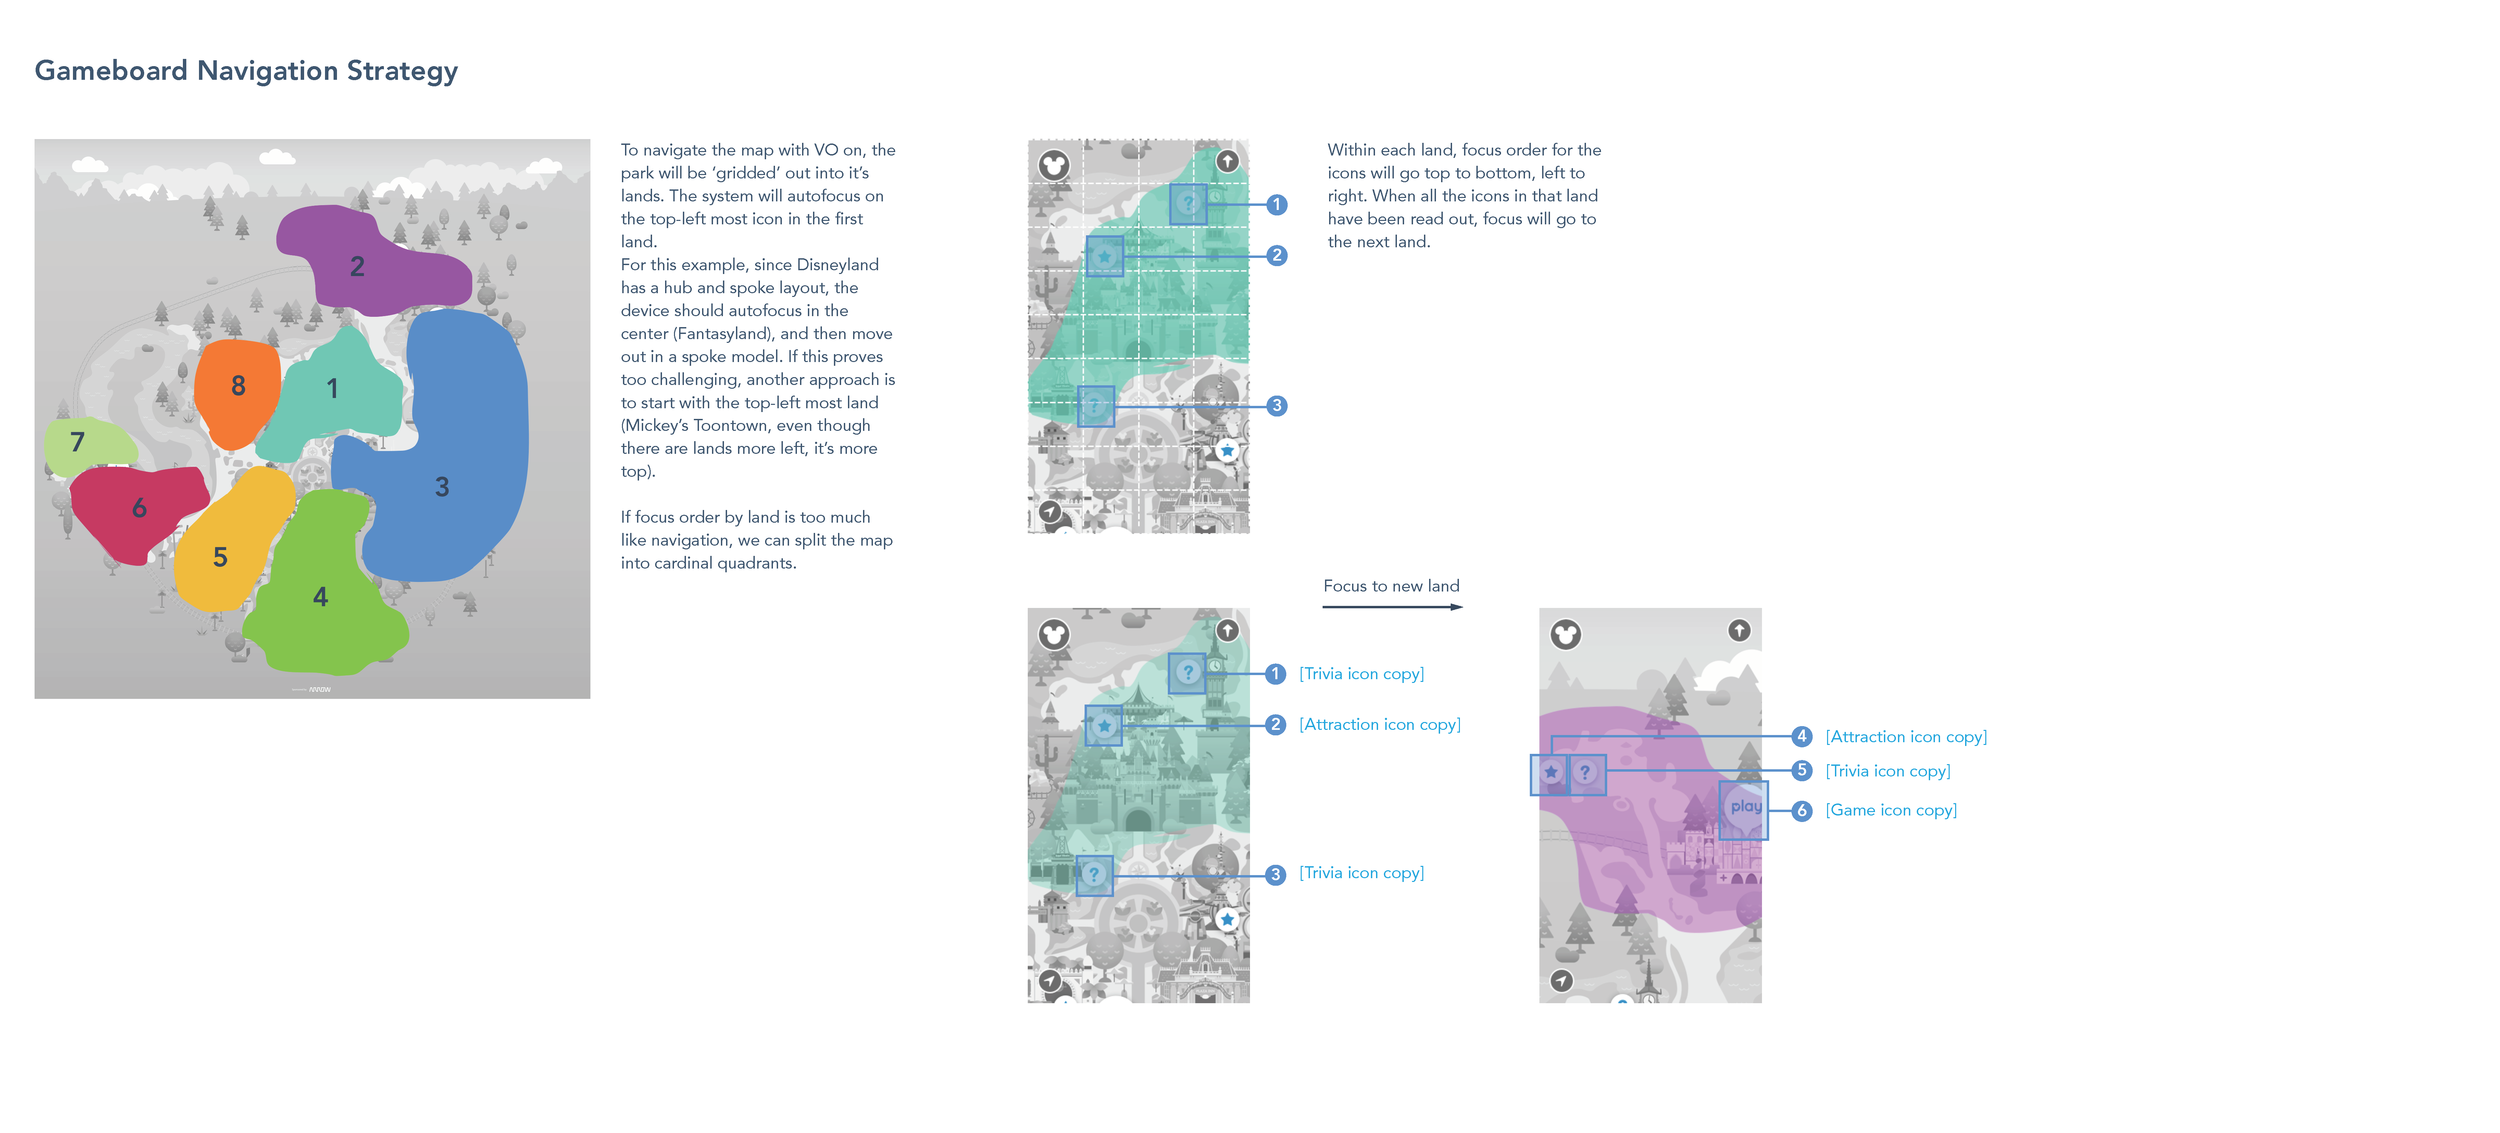 Play_Gameboard_Accessibility_Strategy_Page_2.png